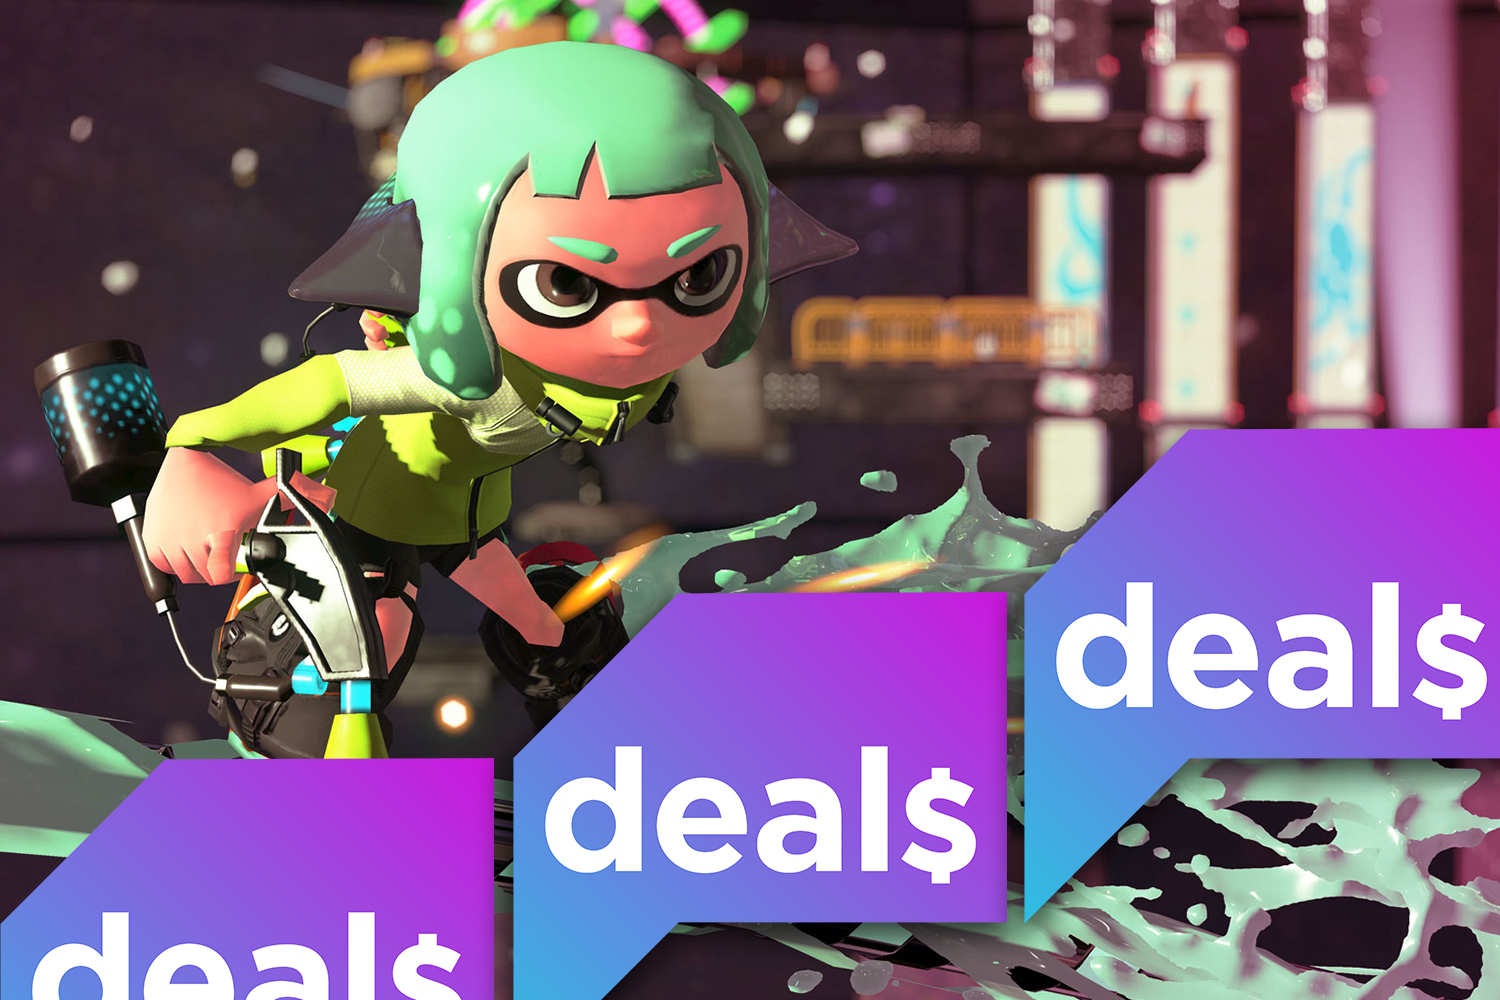 Best gaming deals: Splatoon 2 on Switch, TCL 6-series 4K TVs, and more